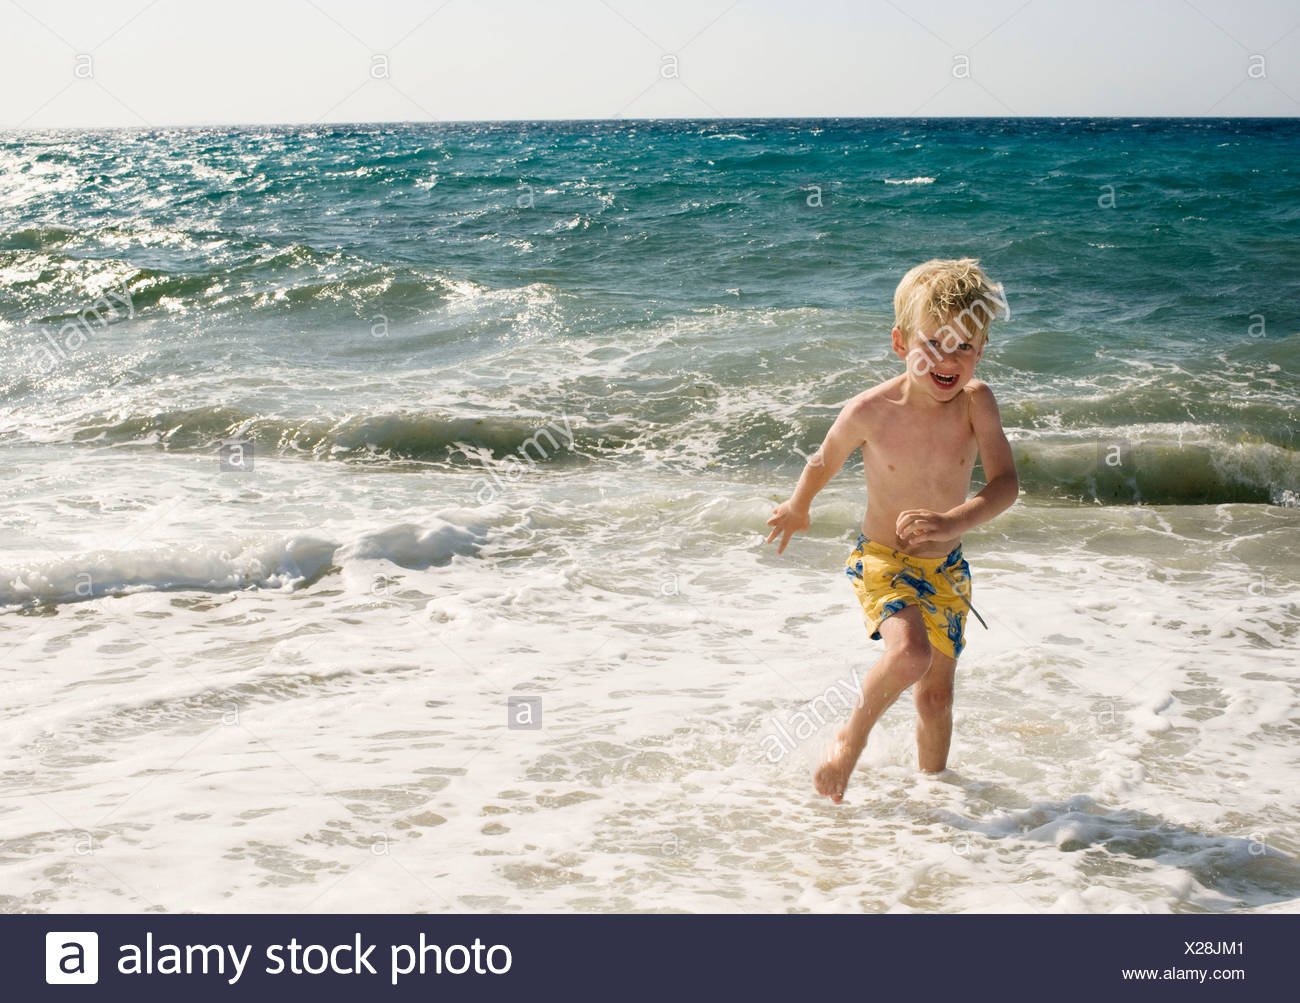 bb971dd6cd Young boy at the beach in shallow water smiling Stock Photo ...